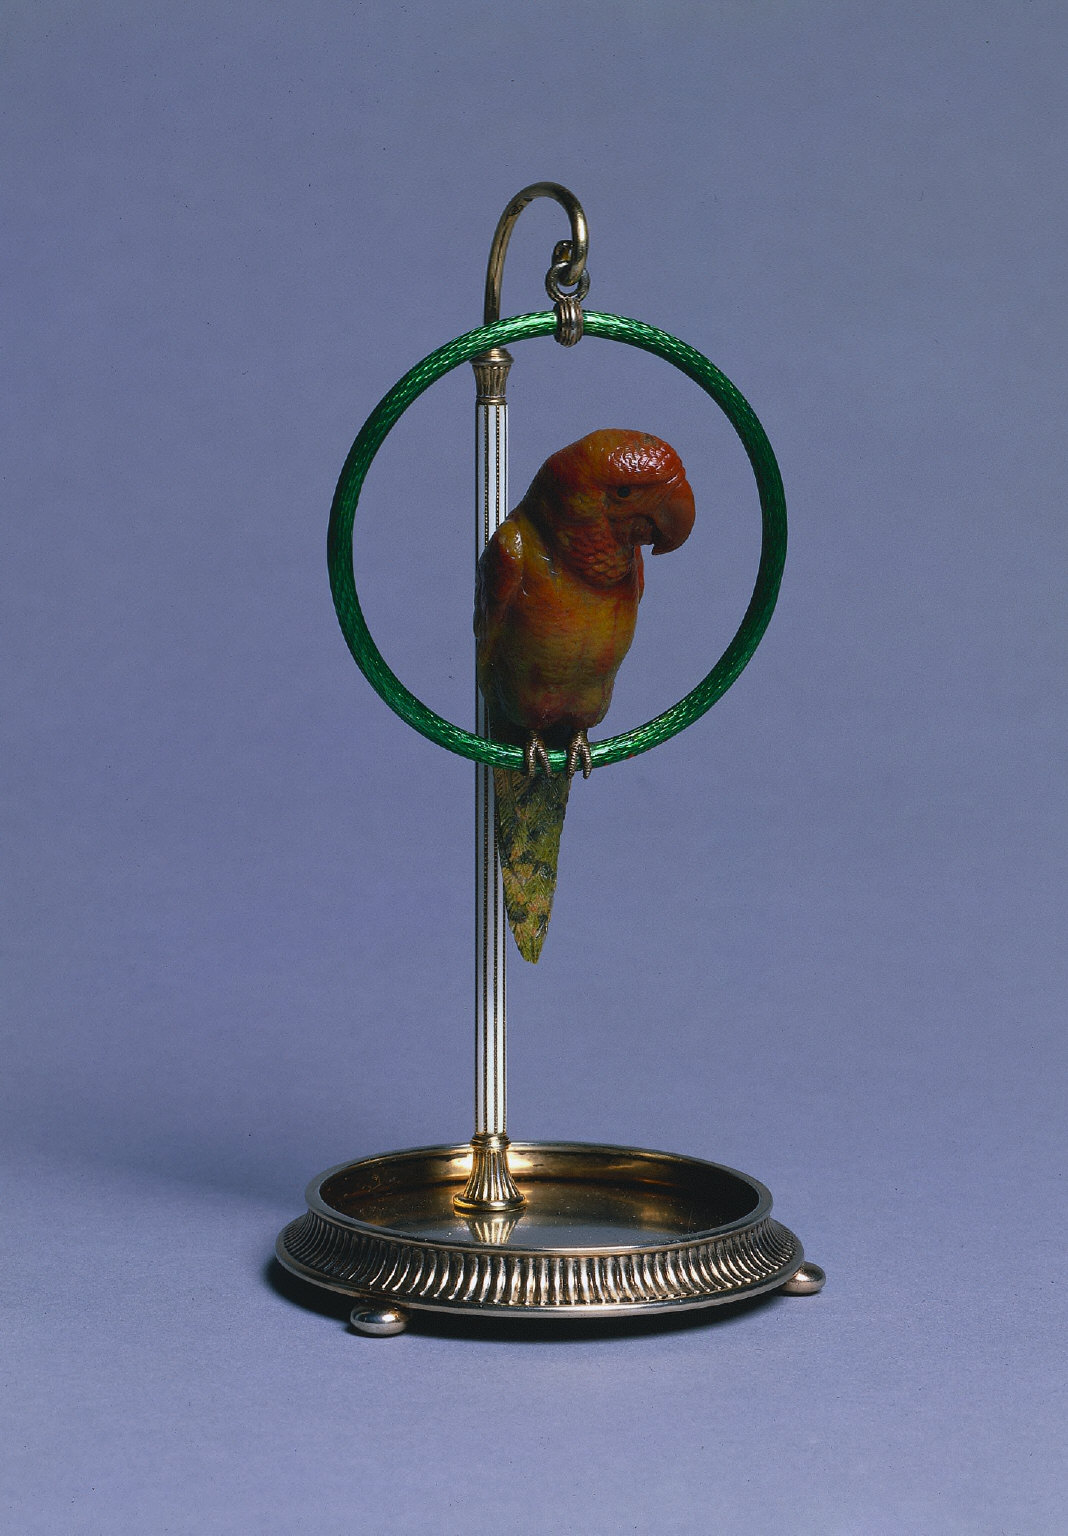 Parrot on a Perch